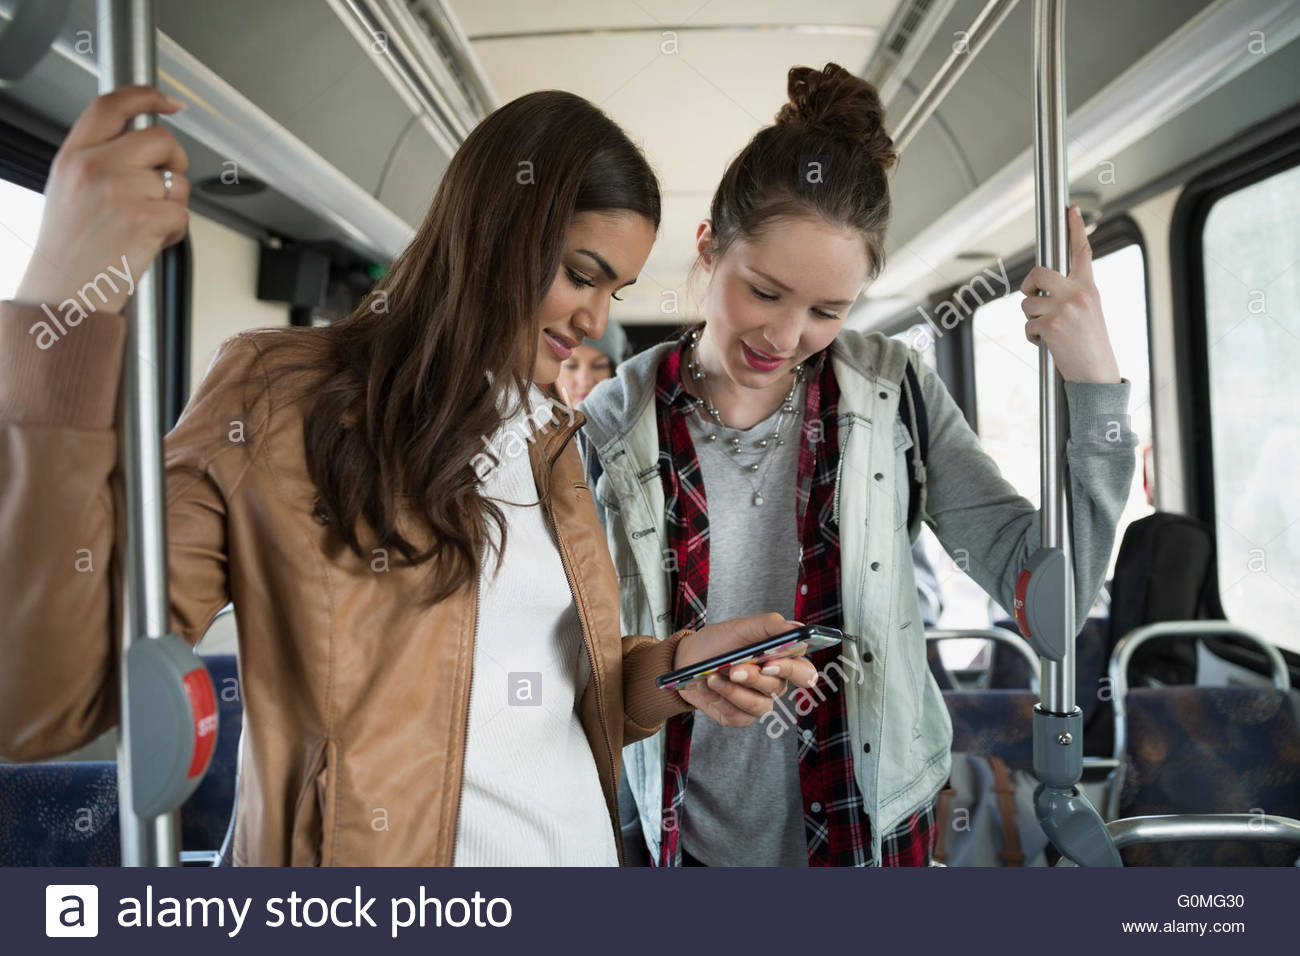 Teenage girls using cell phone standing on bus - Stock Image